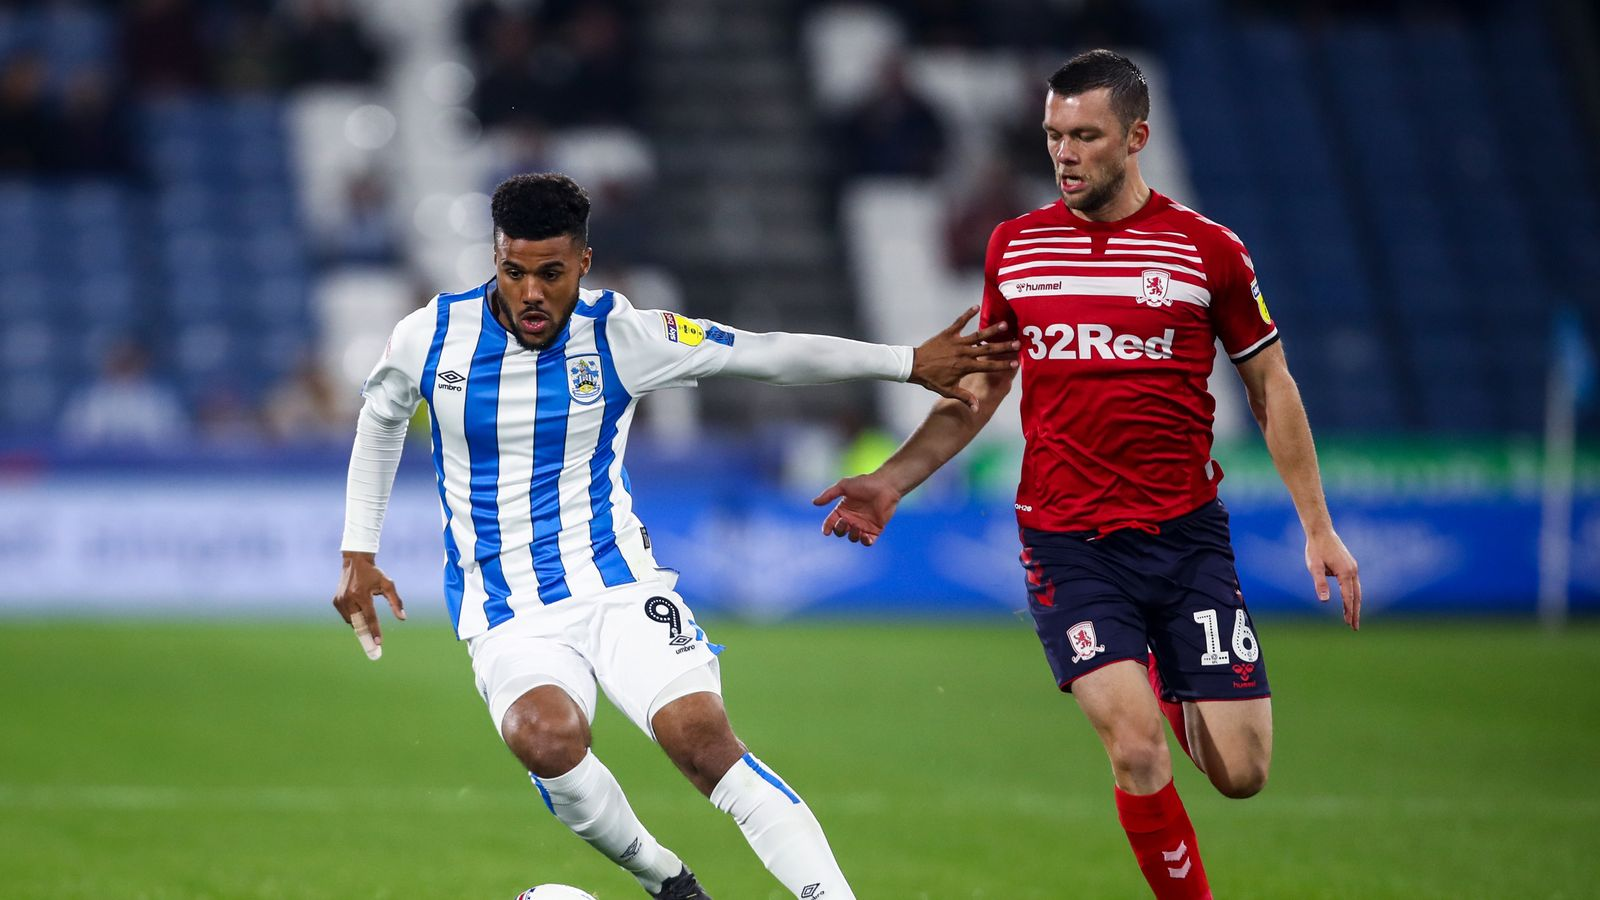 Huddersfield 0-0 Middlesbrough: Stalemate at John Smith's Stadium